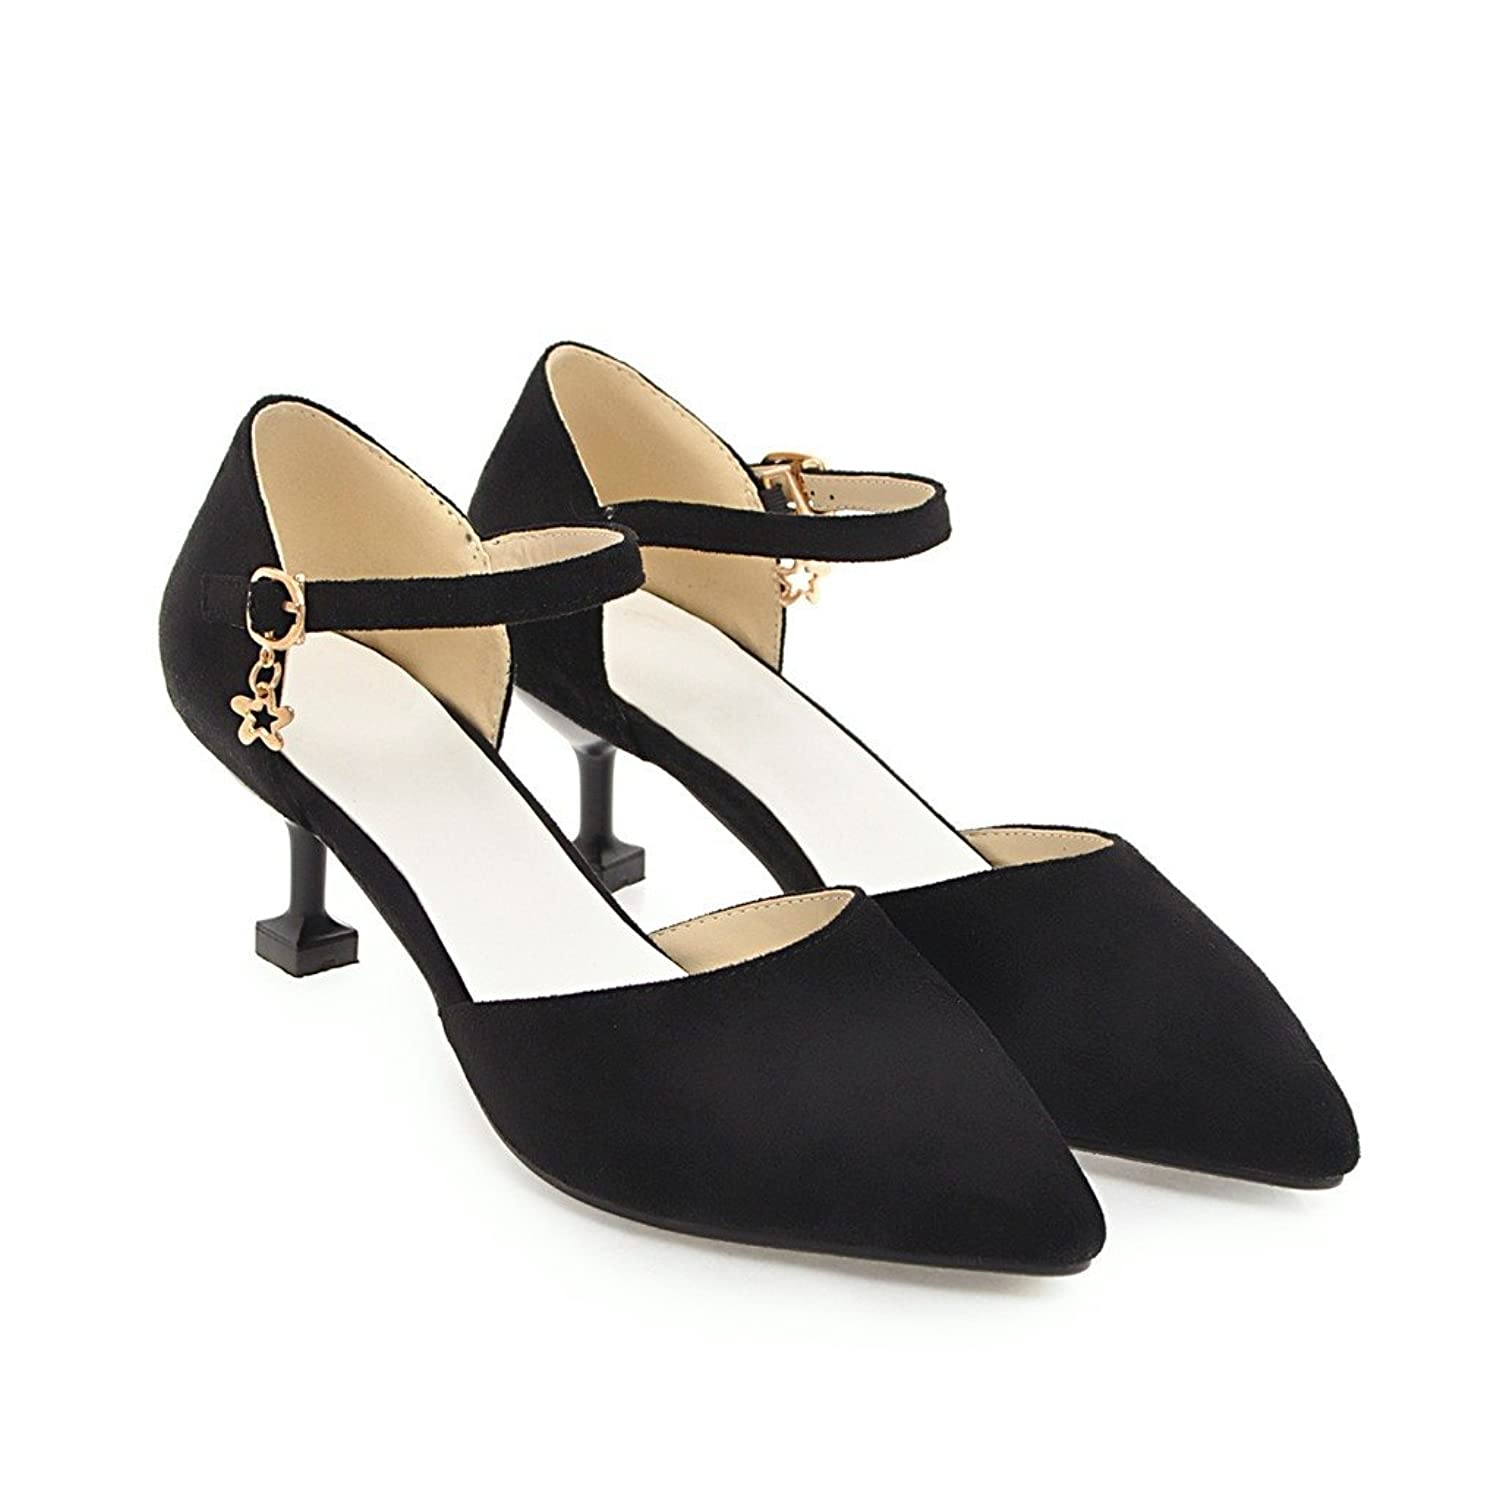 CXQ-Talons QIN&X Women's Pointy Toe Prom Bouche Peu Profonde Stiletto High Heels Pompes Chaussures,Black,41